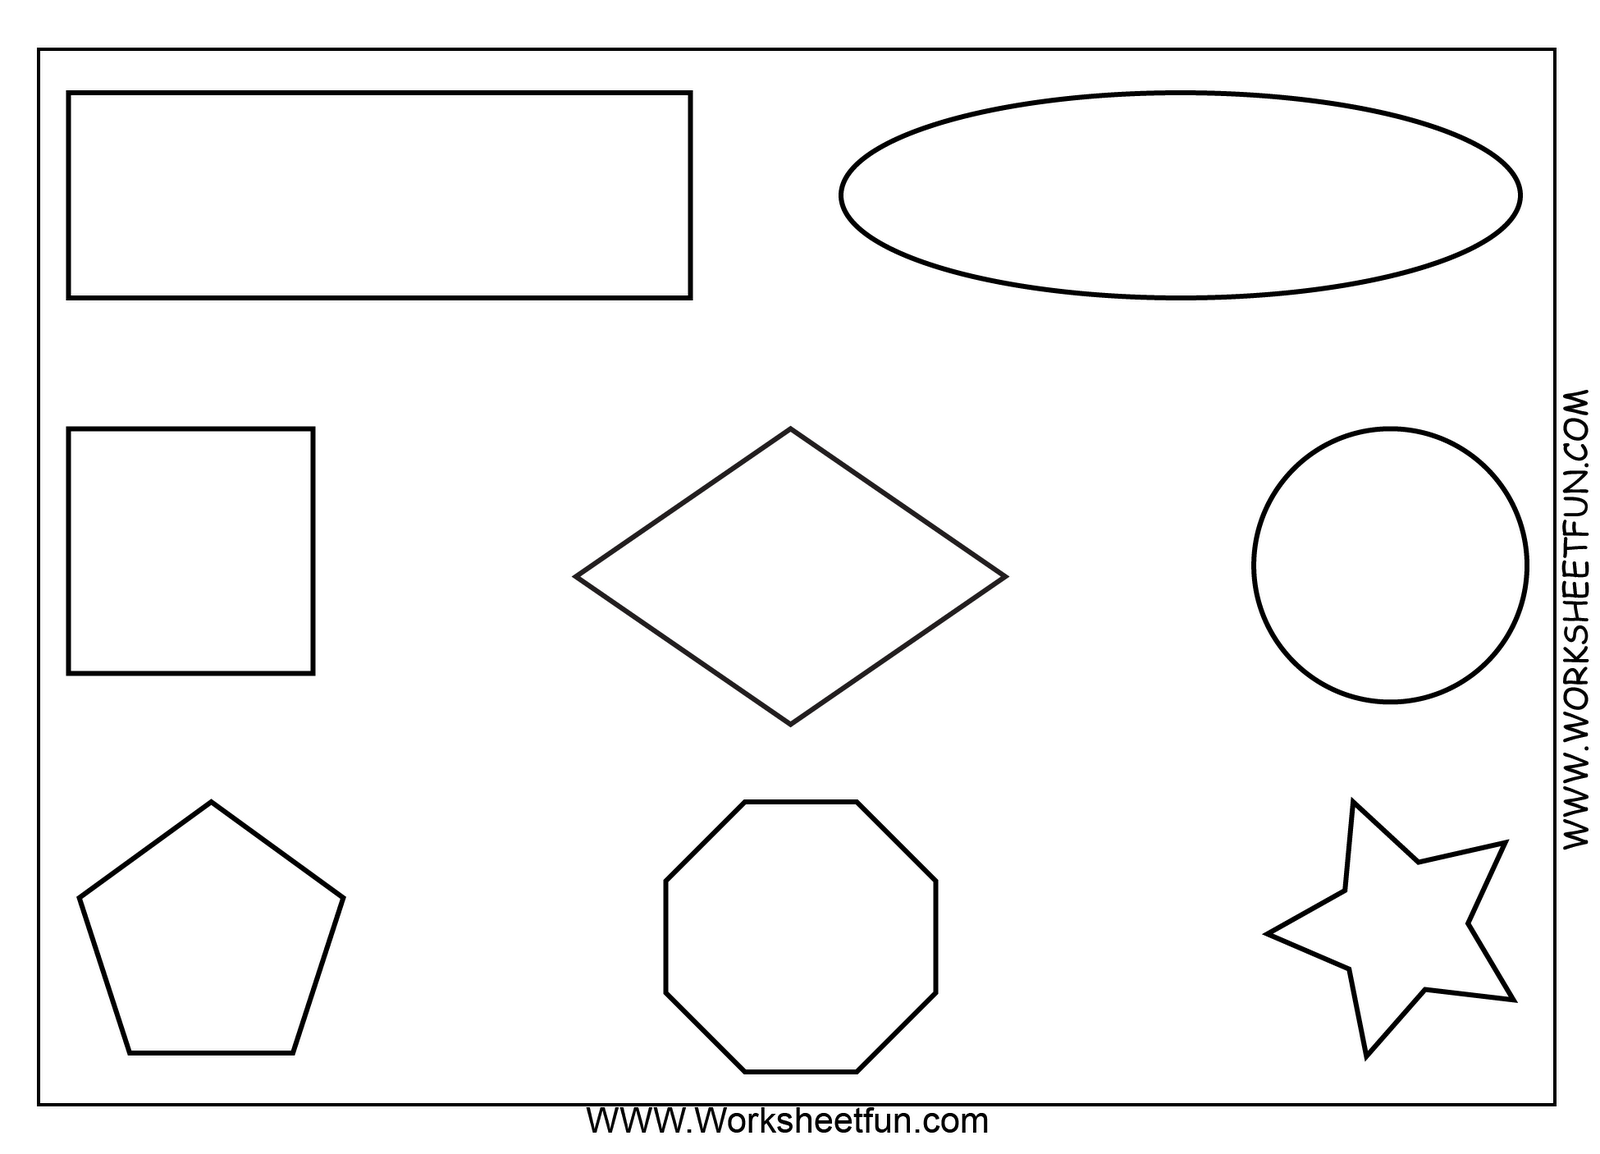 Coloring shapes worksheet - Printable Preschool Worksheets Shapes Tagged With Diamond Shape Coloring Page